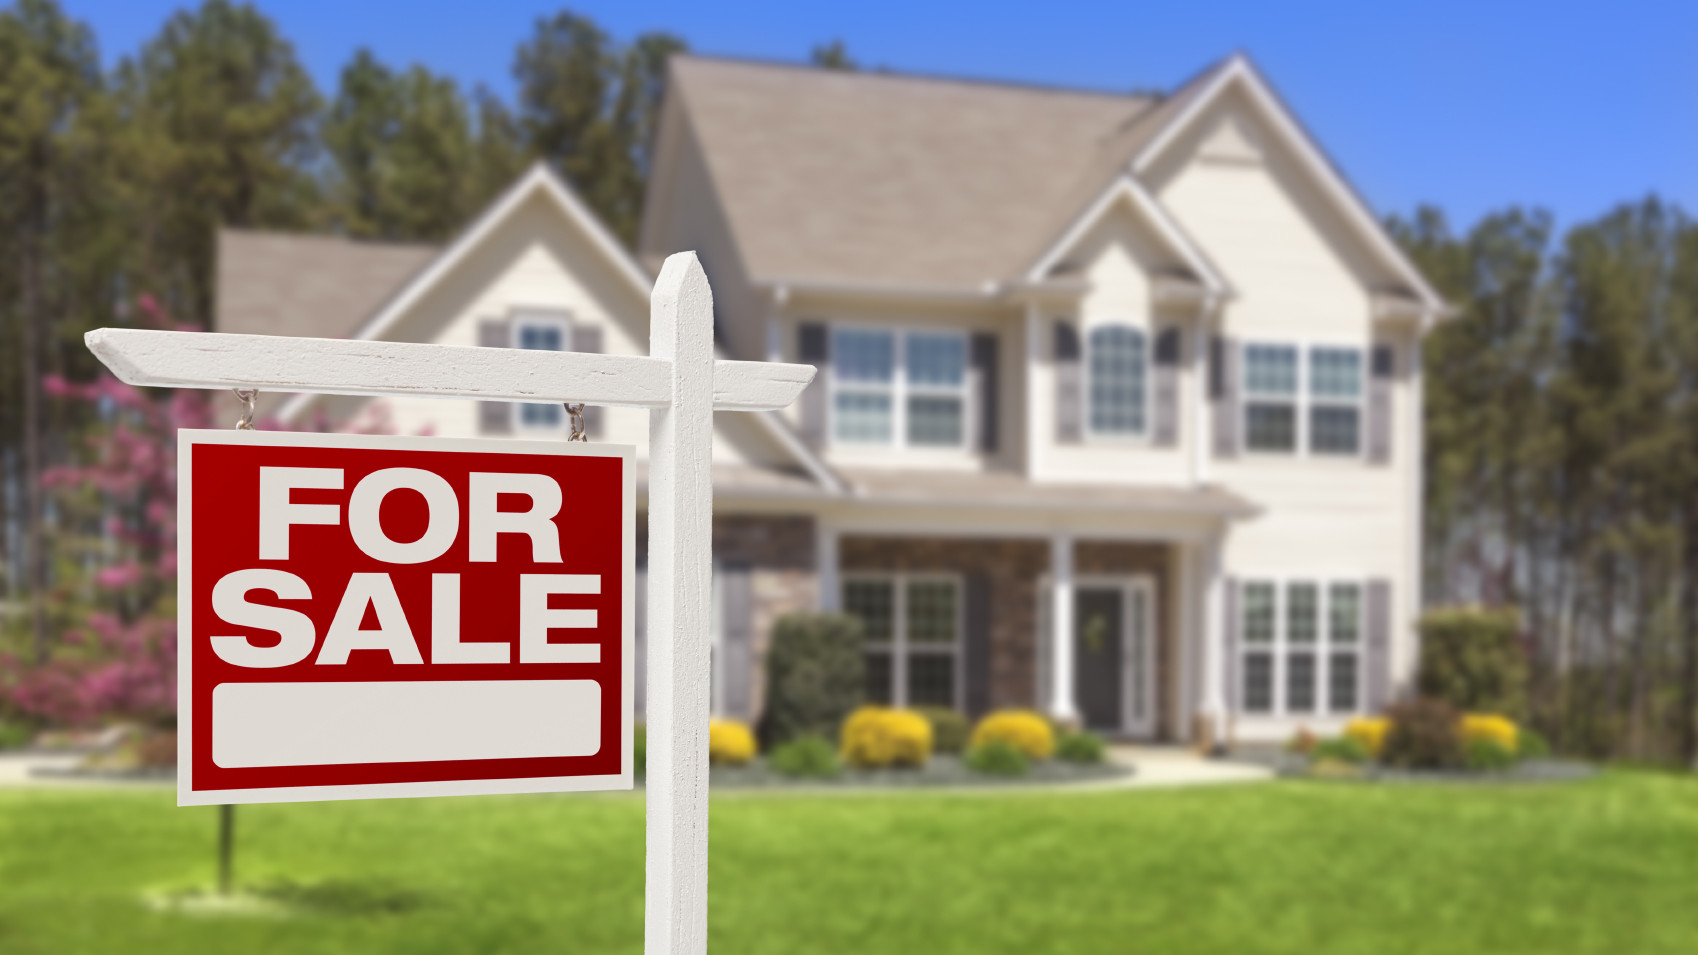 Which Region Is Poised to See the Most Home Sales?